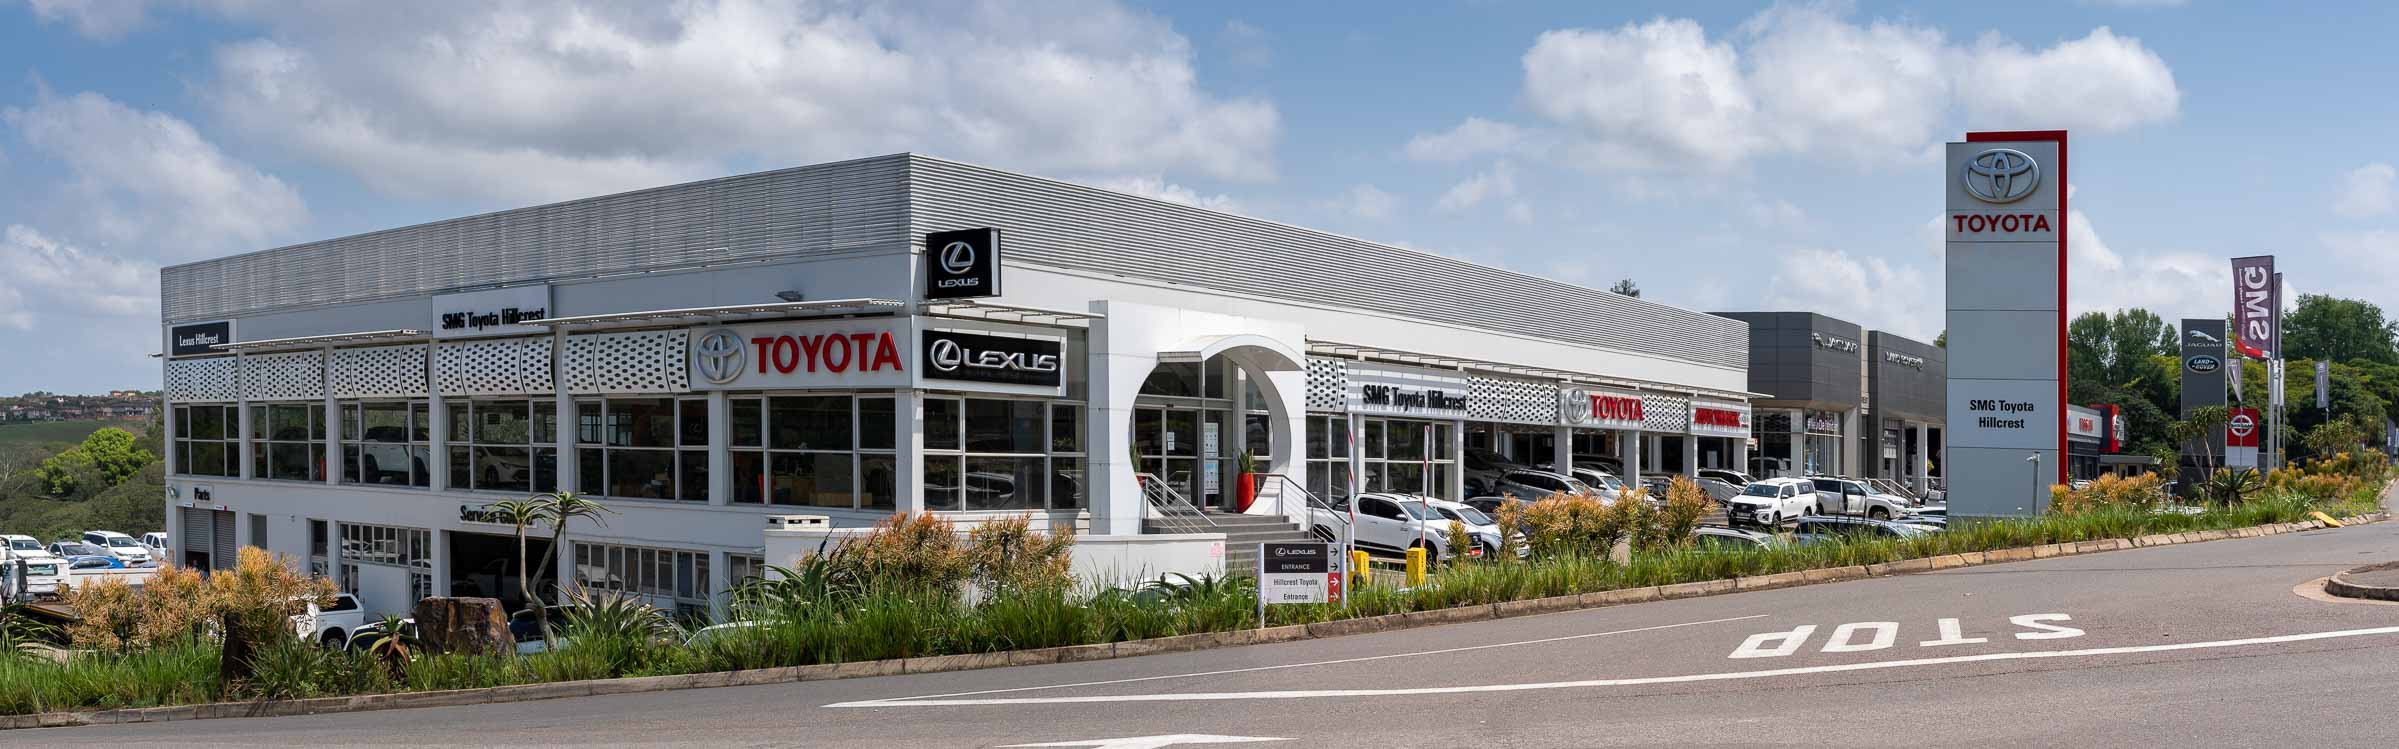 SMG Toyota Hillcrest. Award winners once again.